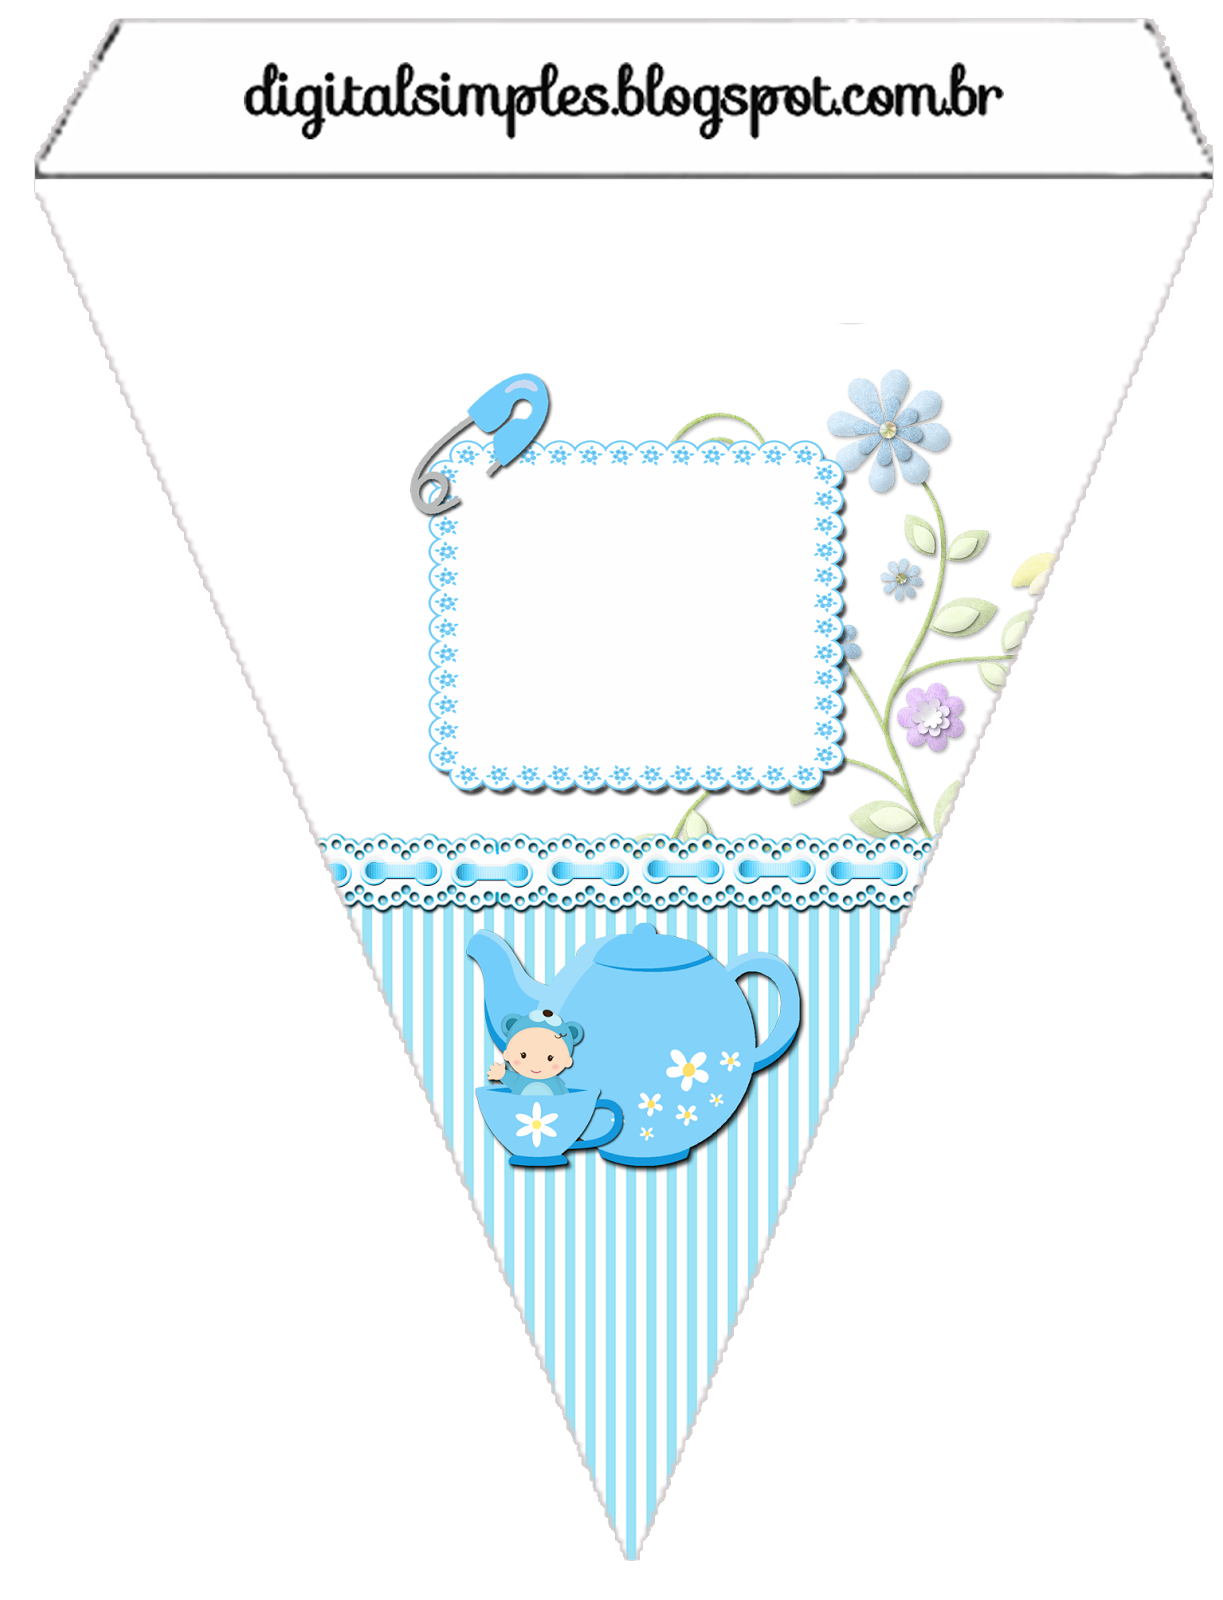 Its A Boy Invitations is perfect invitations template